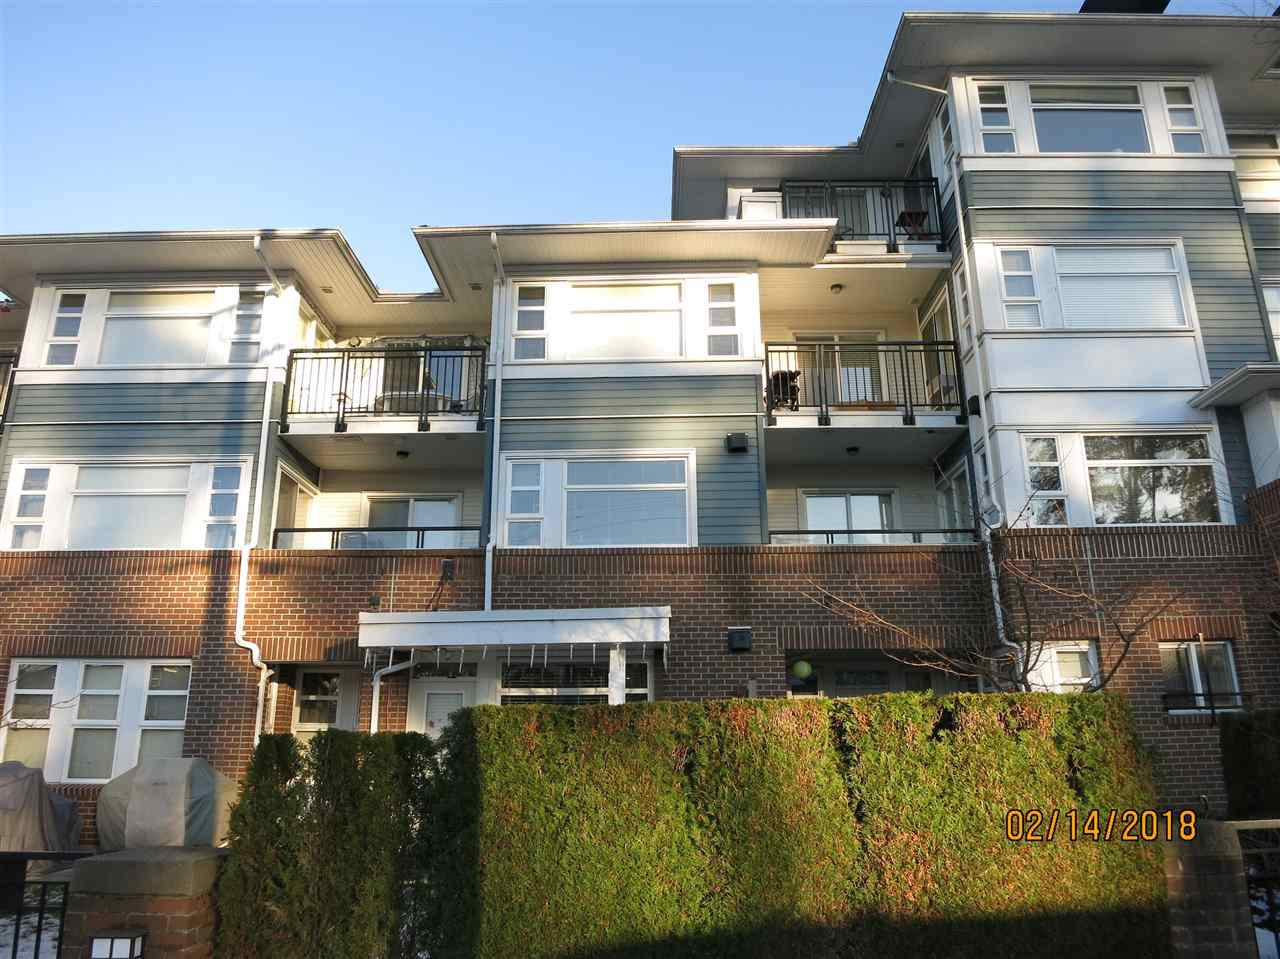 Main Photo: 102 6508 DENBIGH AVENUE in Burnaby: Forest Glen BS Condo for sale (Burnaby South)  : MLS®# R2239606